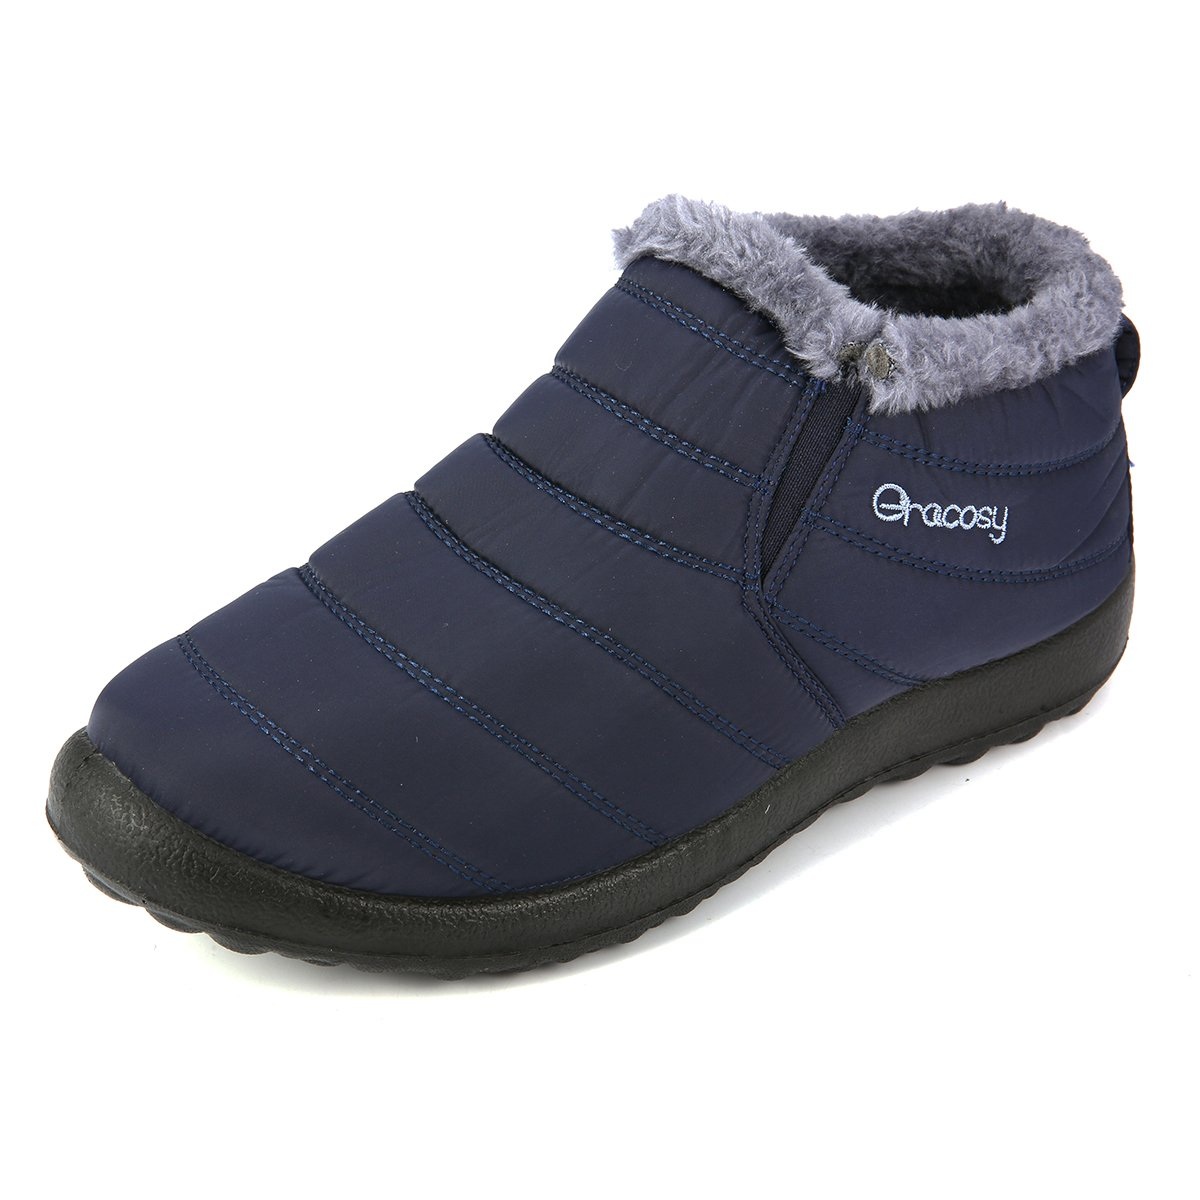 Gracosy Warm Snow Boots, Winter Warm Ankle Boots,Fur Lining Boots,Waterproof Thickening Winter Shoes for Women Blue 10 US